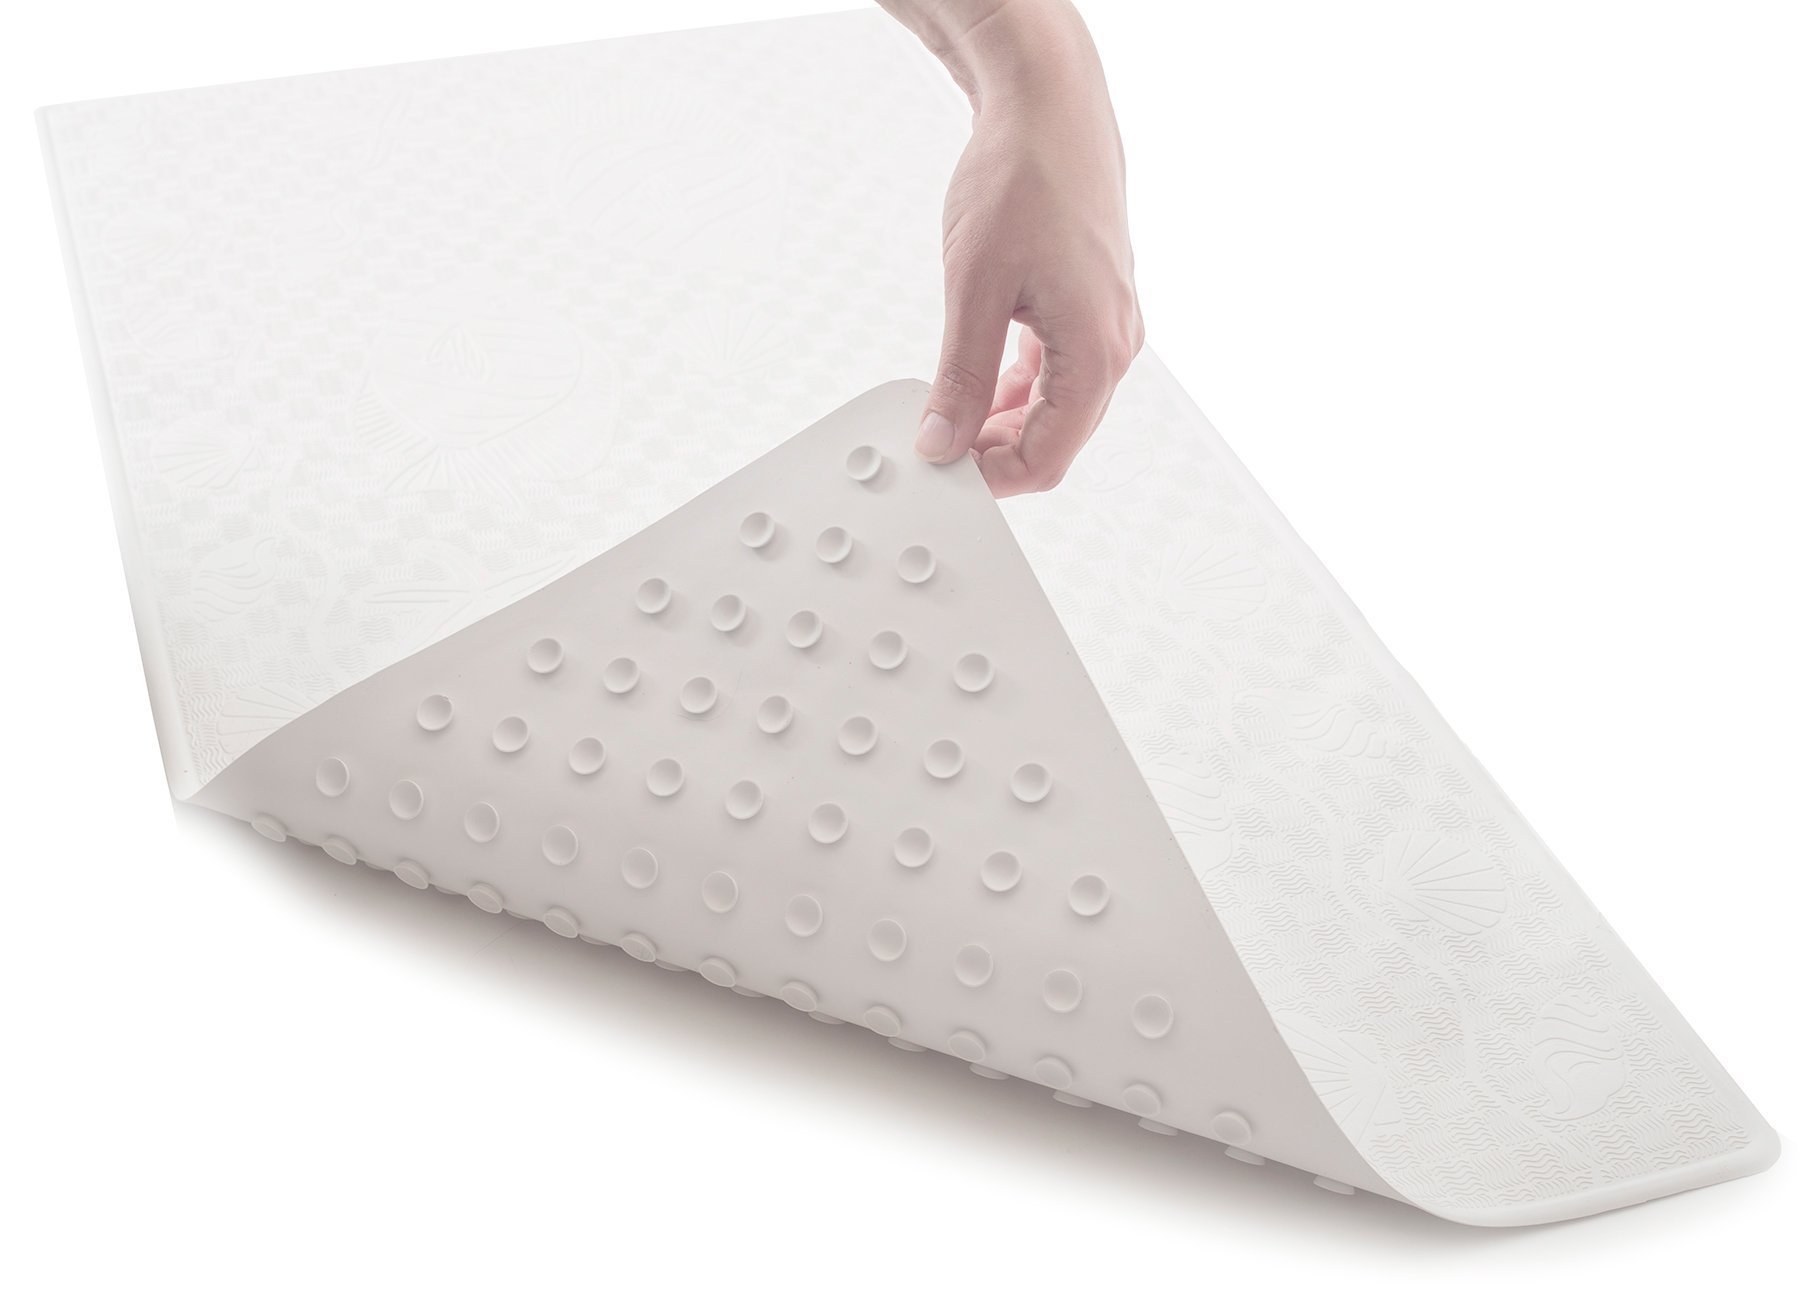 Non Slip Bath Tub Mat Extra Large 49 5 More Coverage